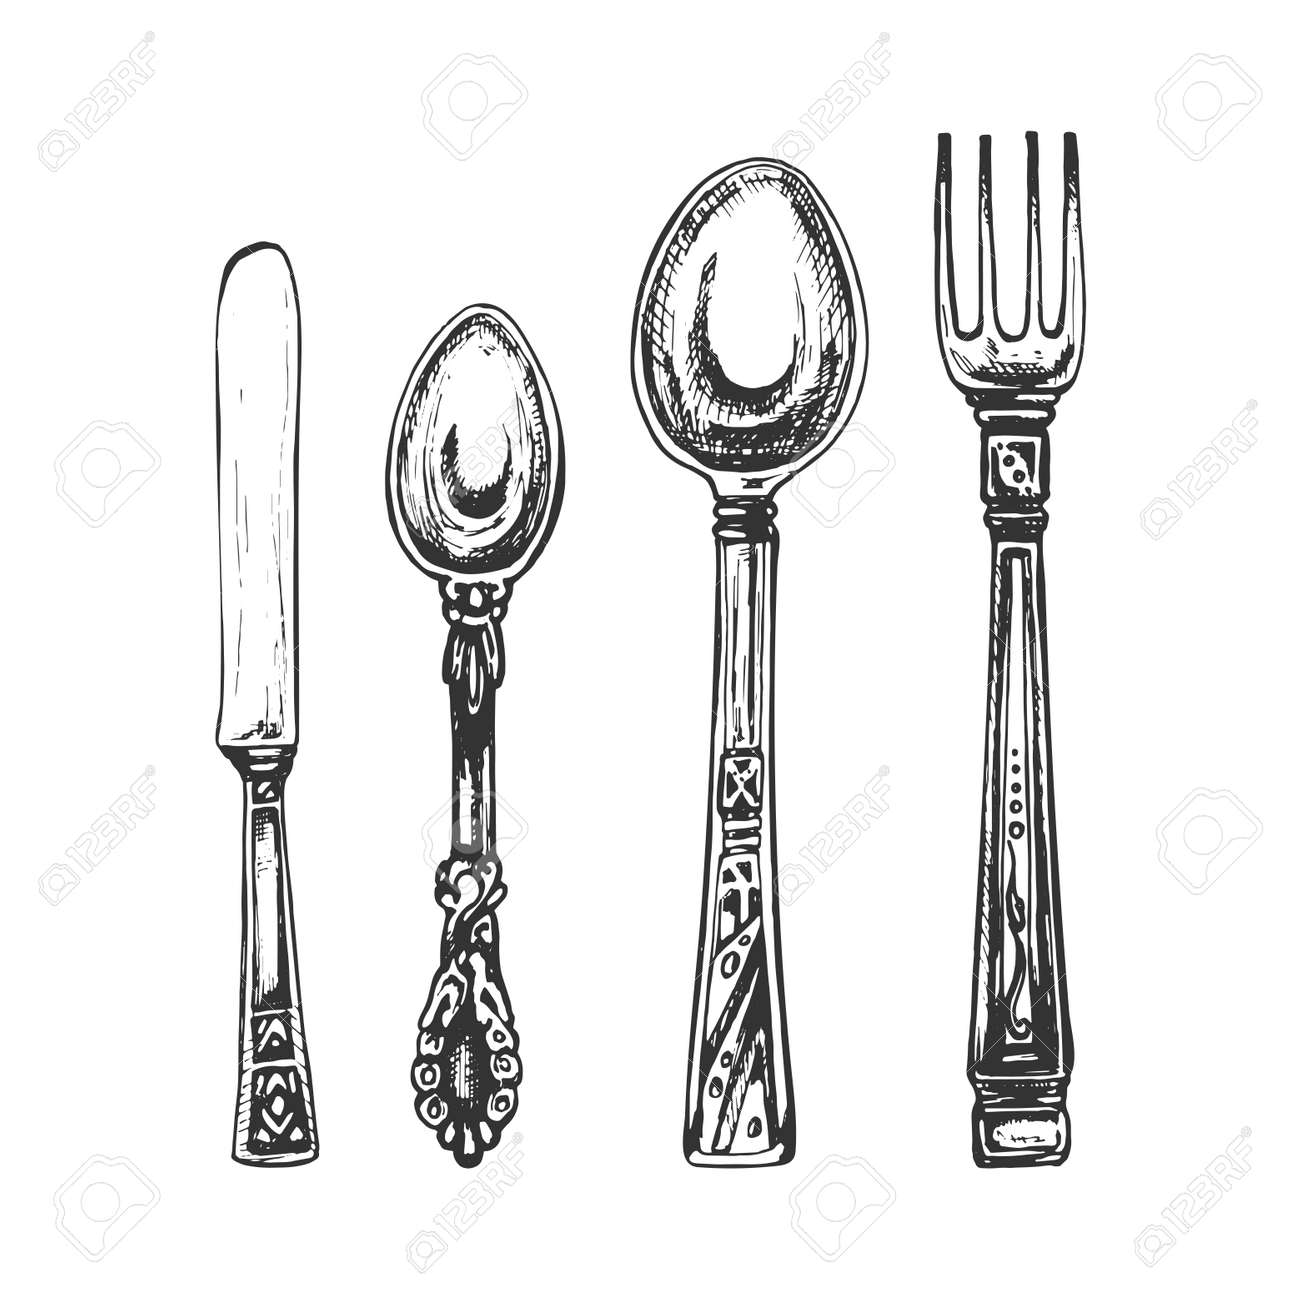 two spoons, fork, knife, cutlery graphic, black outline on white background, vintage hand drawing - 159370186